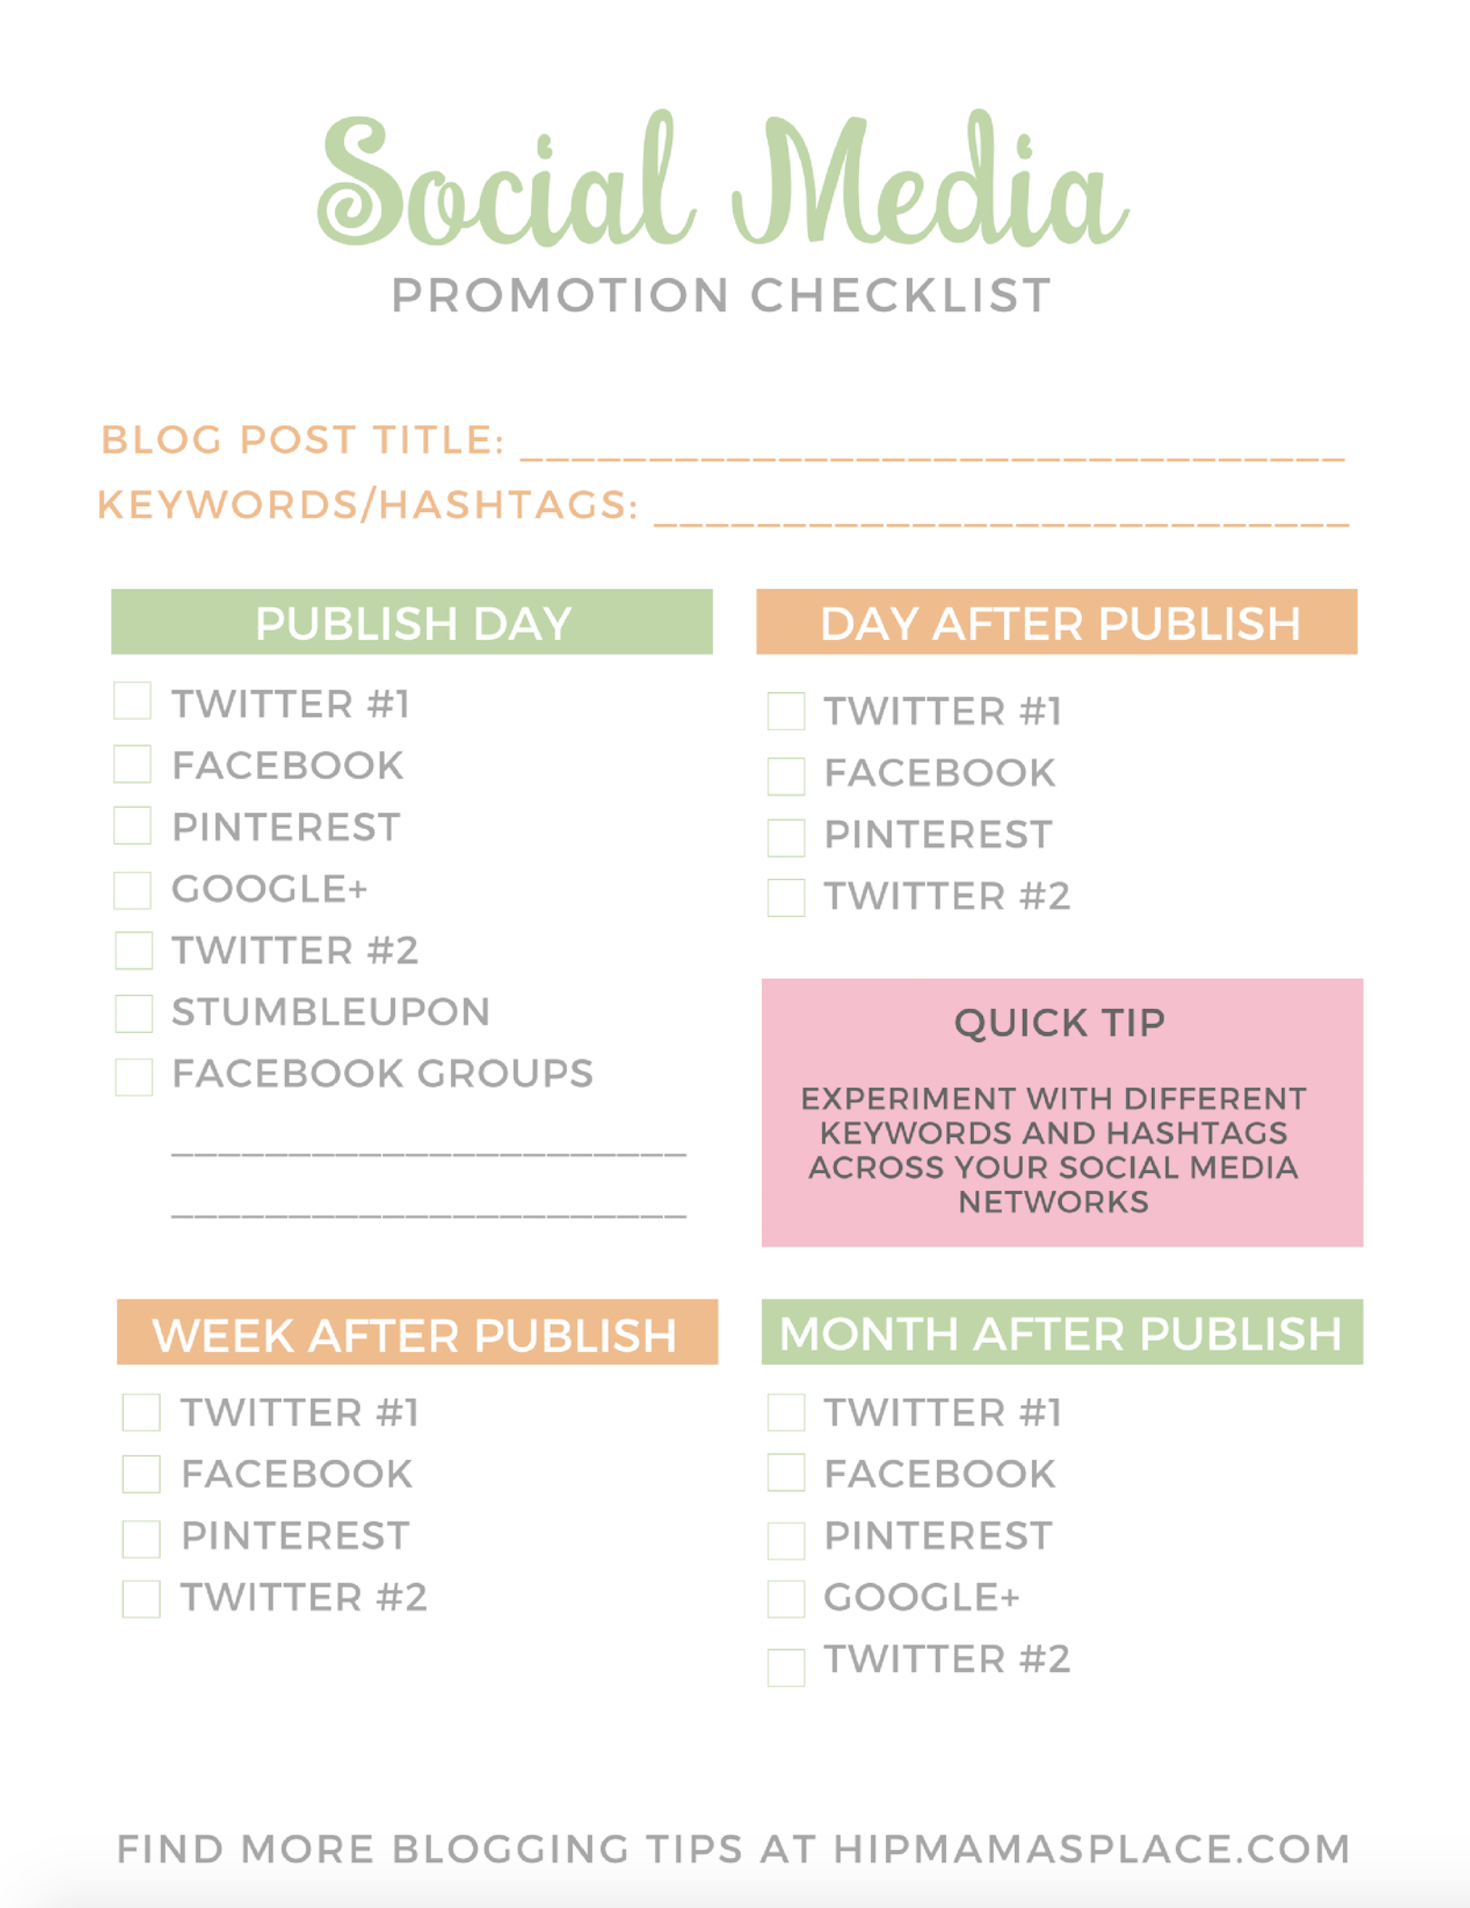 Download your FREE Social Media Promotion Checklist at Hip Mama's Place!